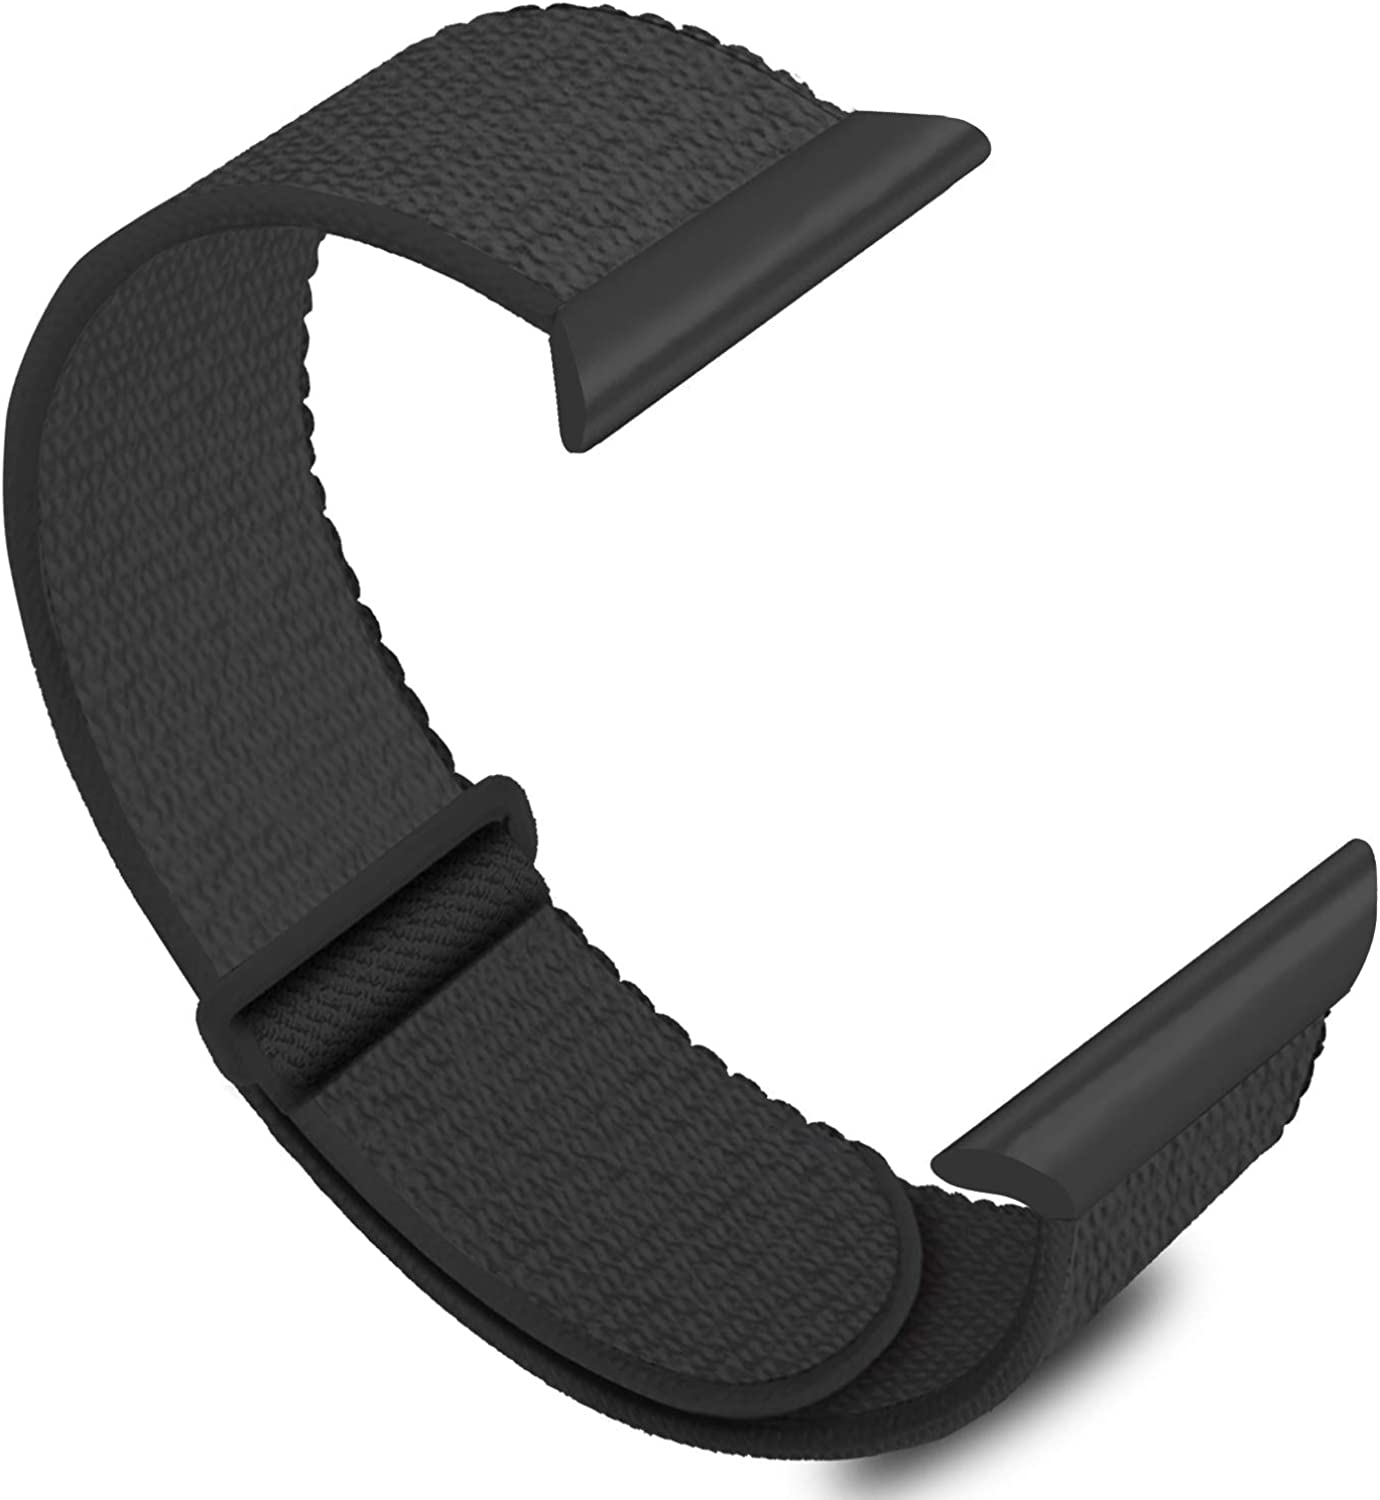 WAAILU Sport Loop Compatible with Apple Watch Band 38mm 40mm 42mm 44mm, Velcro Breathable Soft Lightweight Women&Men Nylon Strap Replacement for iWatch Series SE/1/2/3/4/5/6